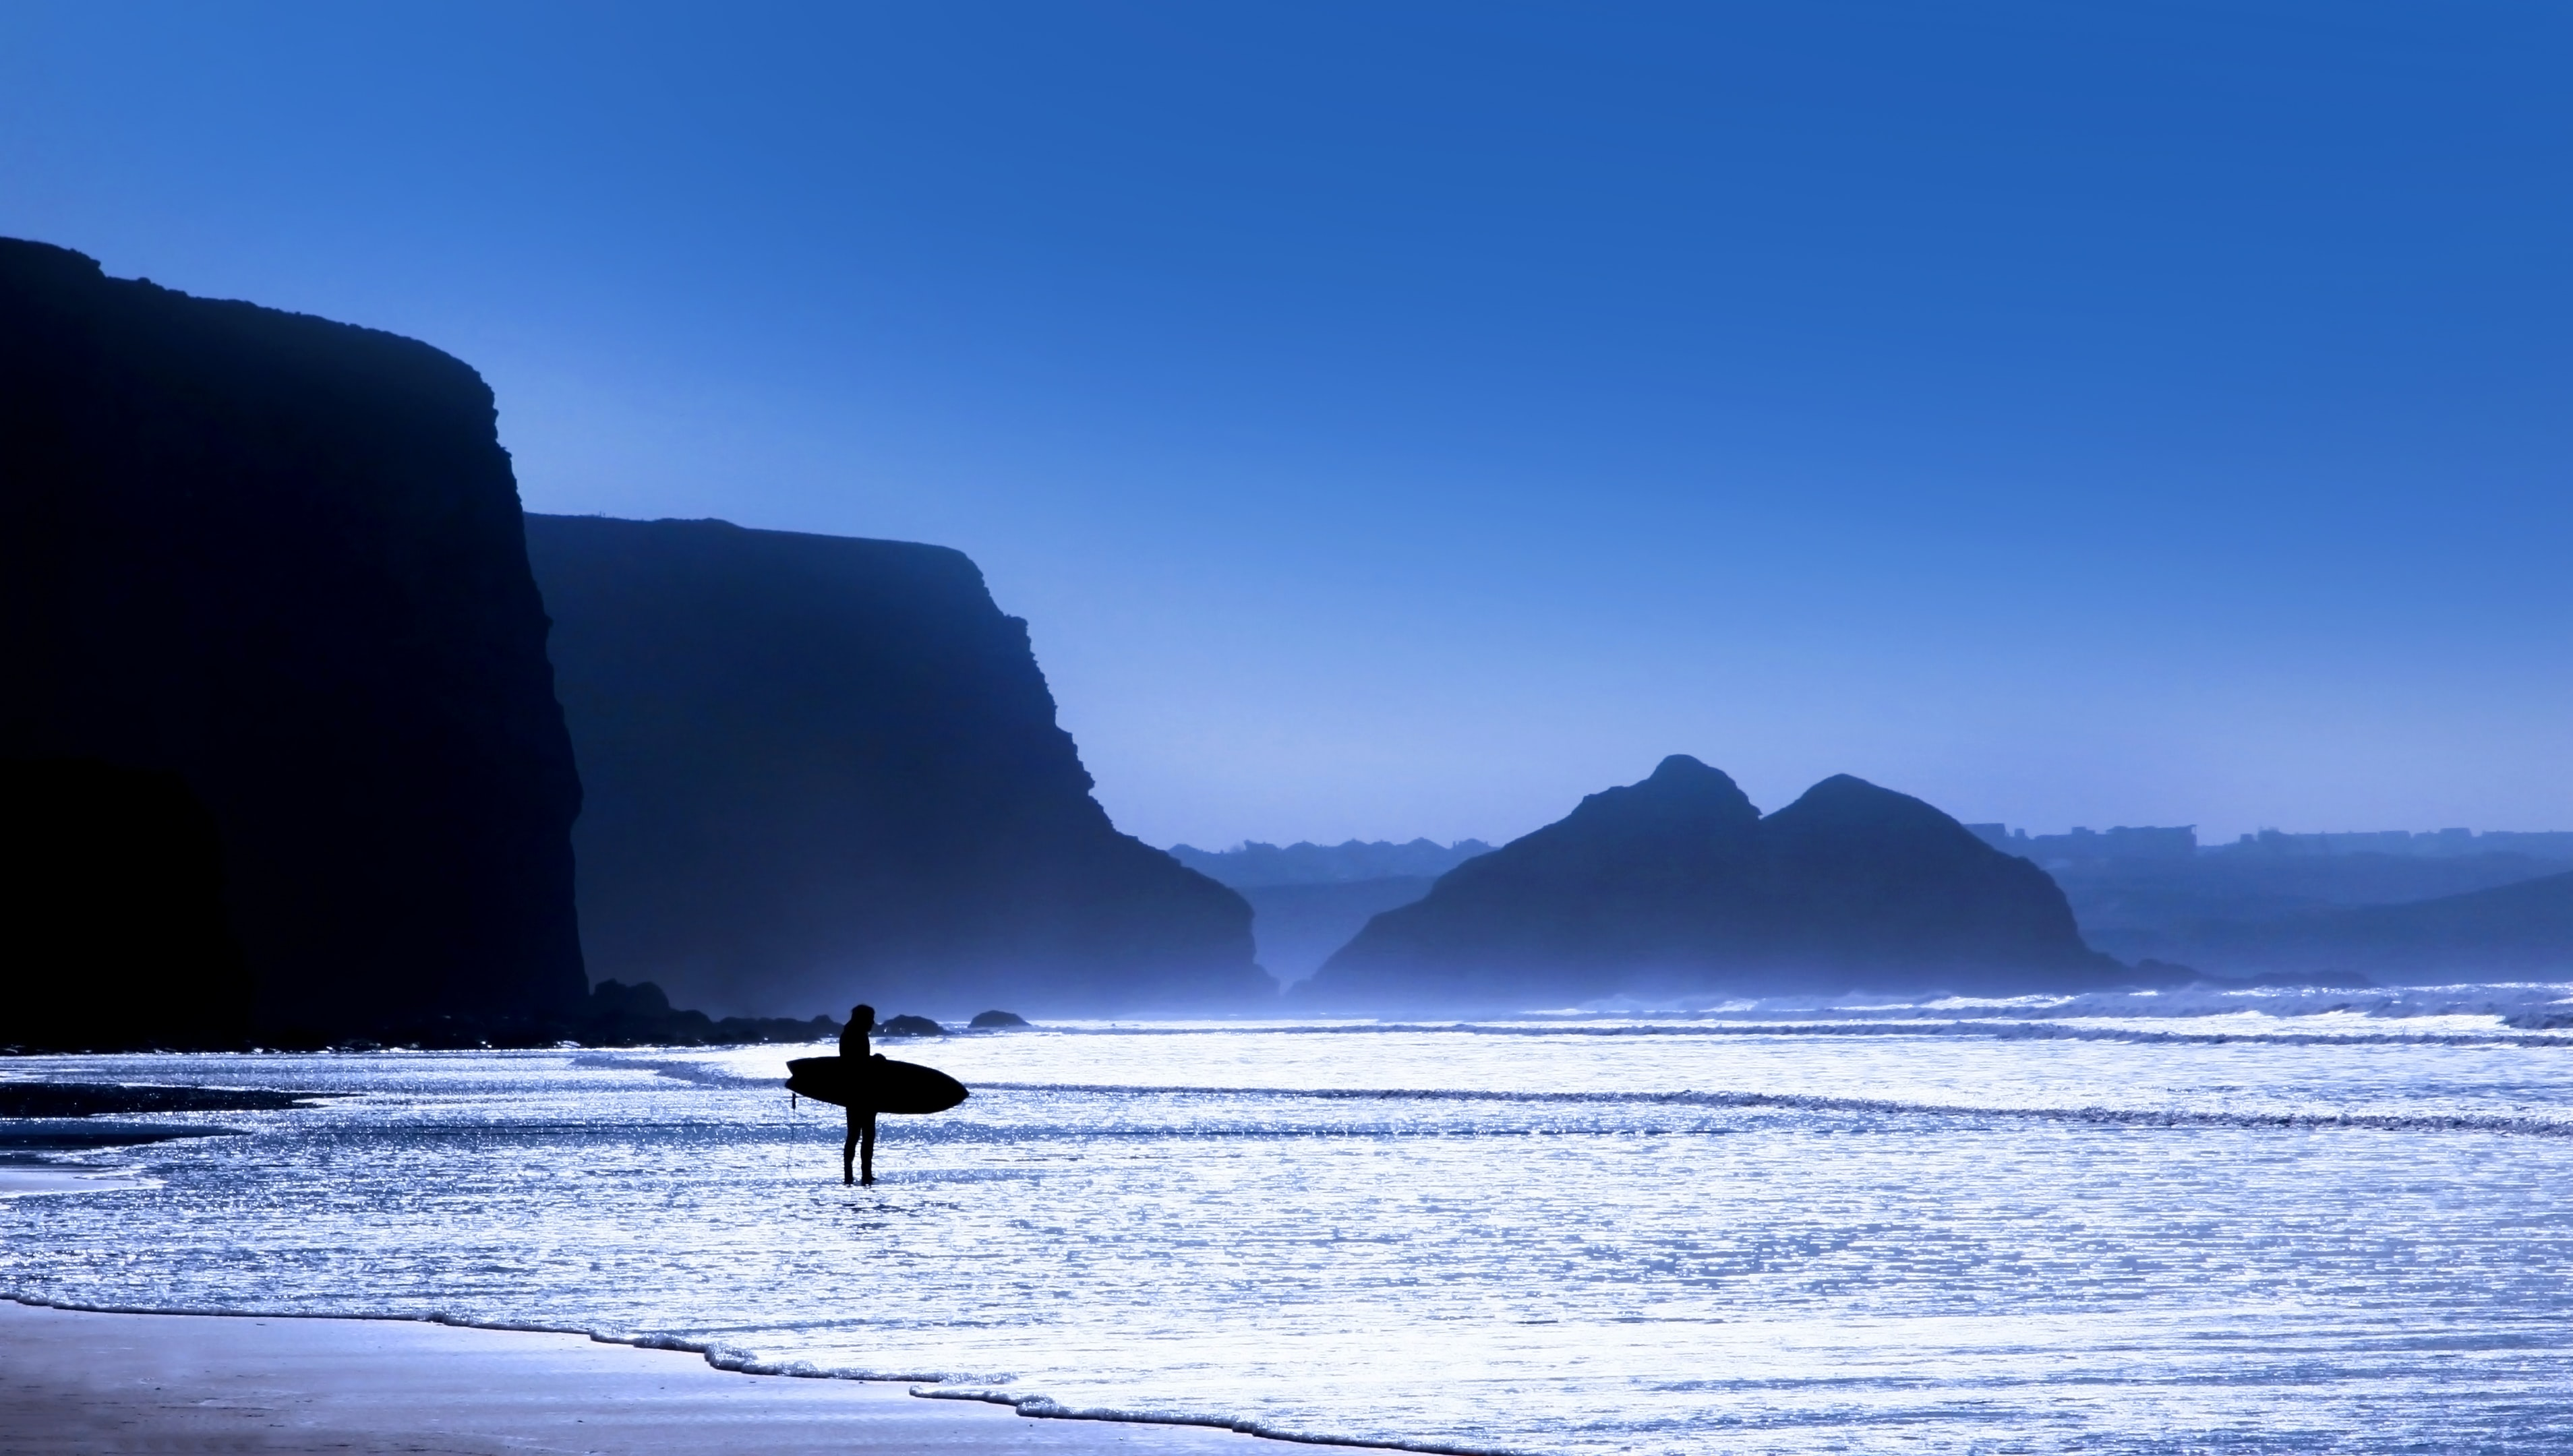 silhouette of person holding surfboard standing on seashore at blue hour